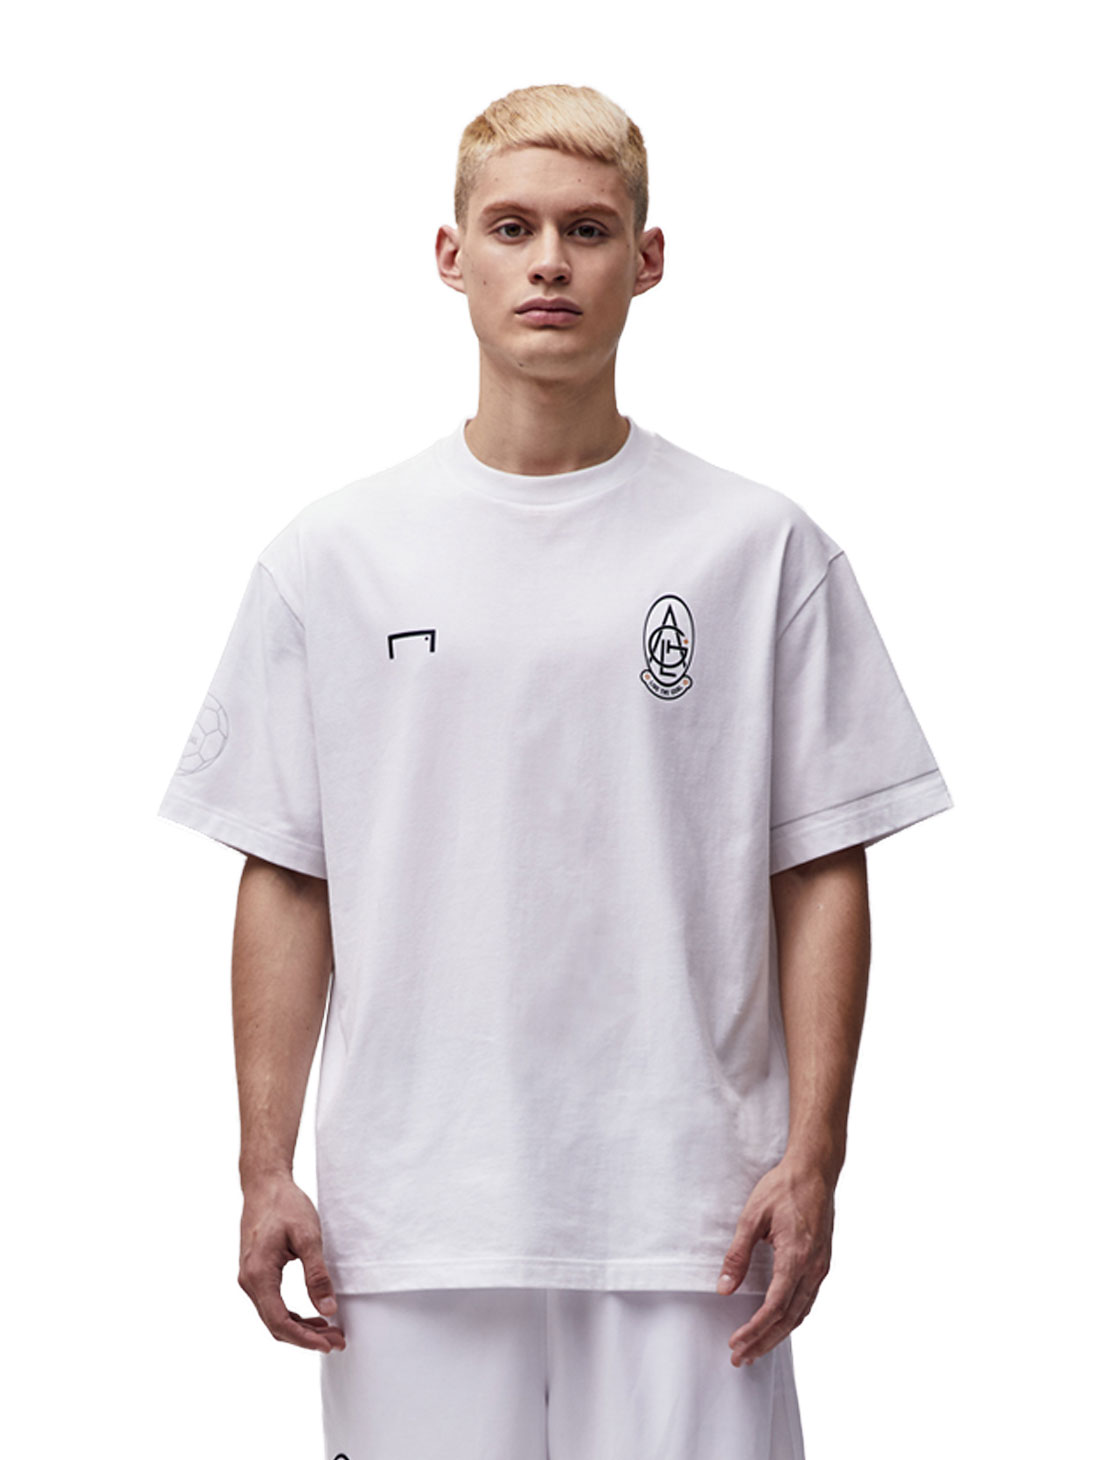 GOALSTUDIO EMBLEM TEE - WHITE